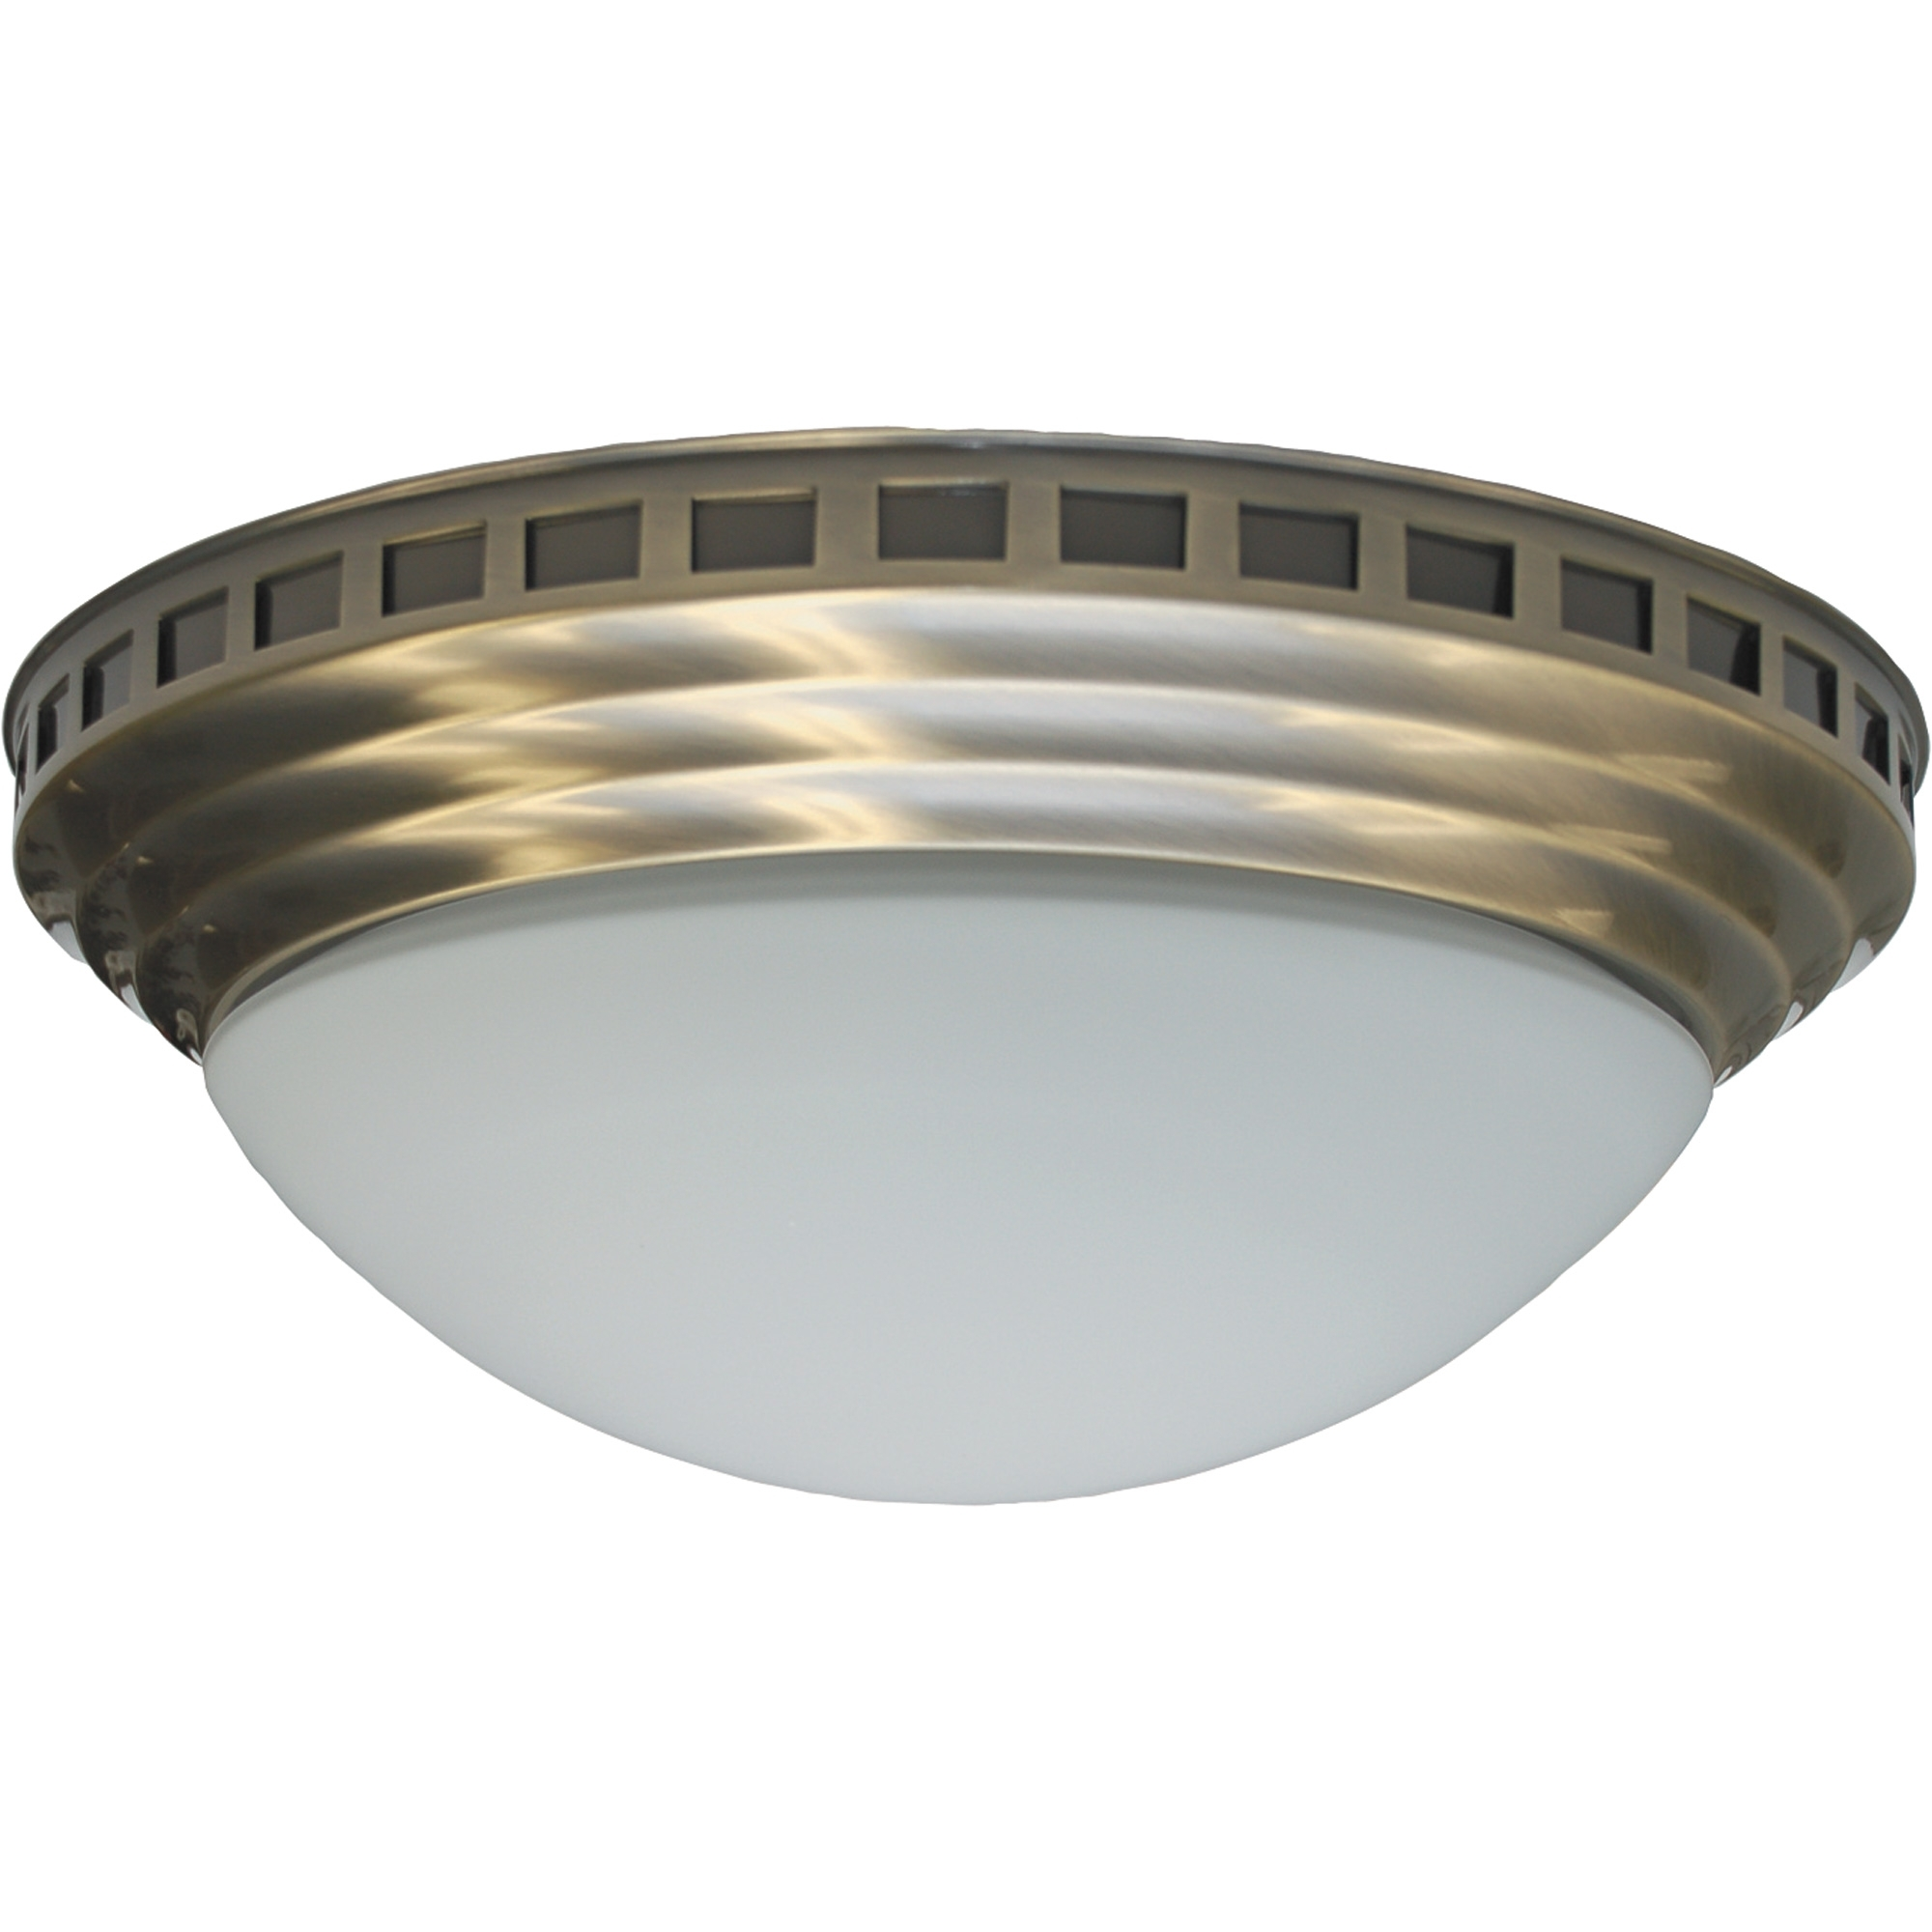 Best Bathroom Ceiling Light Heater Design Inspiration Of Fan In Outdoor Ceiling Lights At Bunnings (#2 of 15)